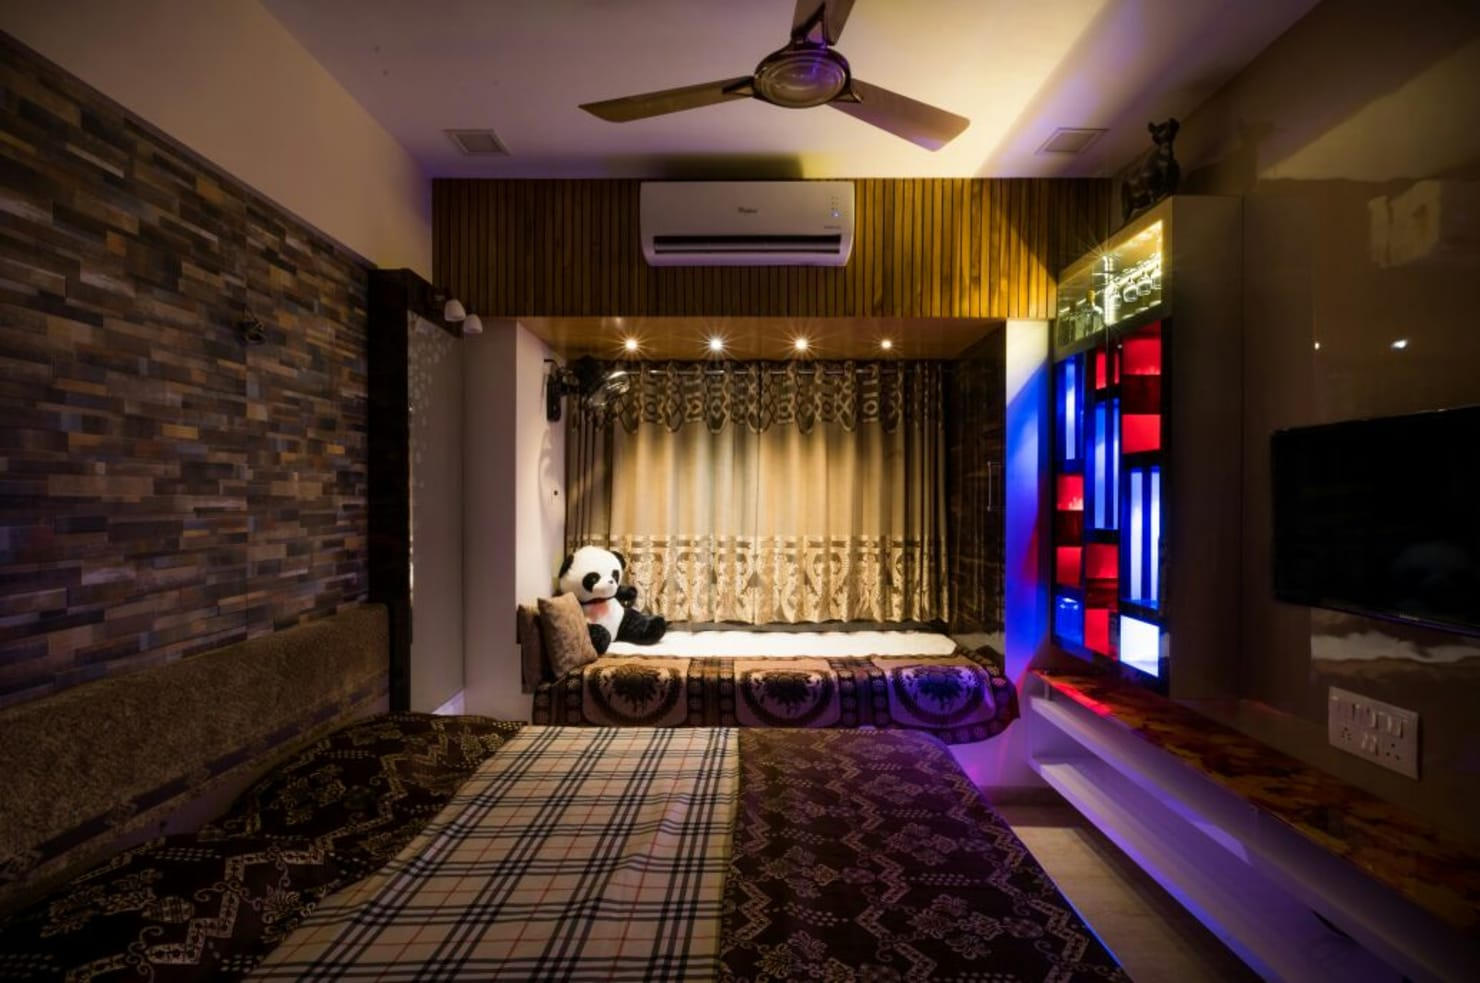 Bedroom lighting fixtures by interior architects in New Delhi